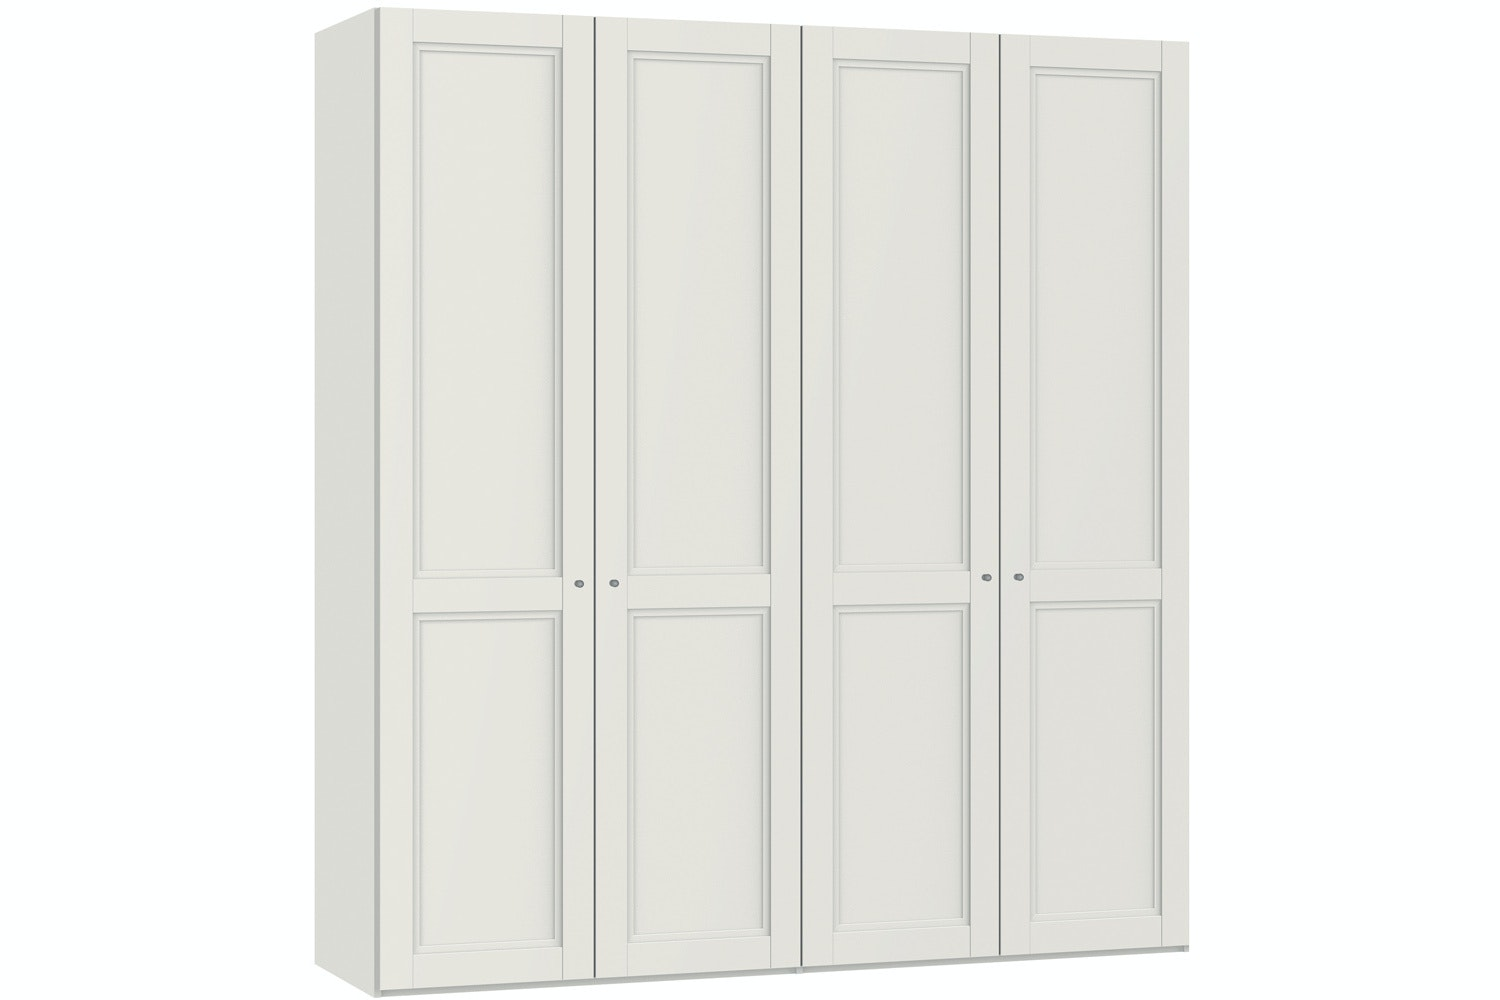 Emily Hinged 4 Door Wardrobe 203Cm | Country